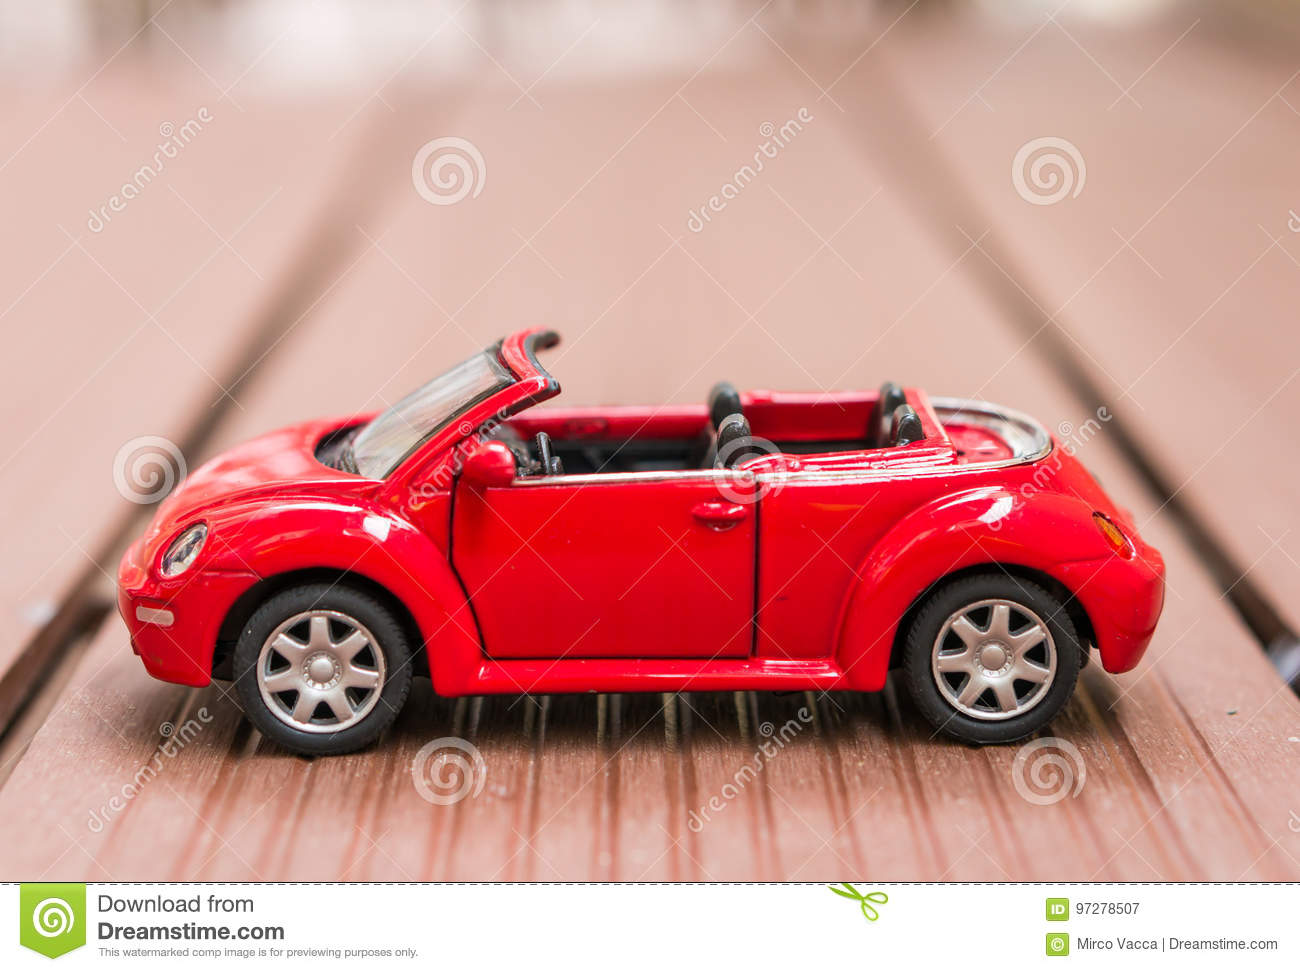 found wanted a with good green nong lime red volkswagen vw beetle price in pin